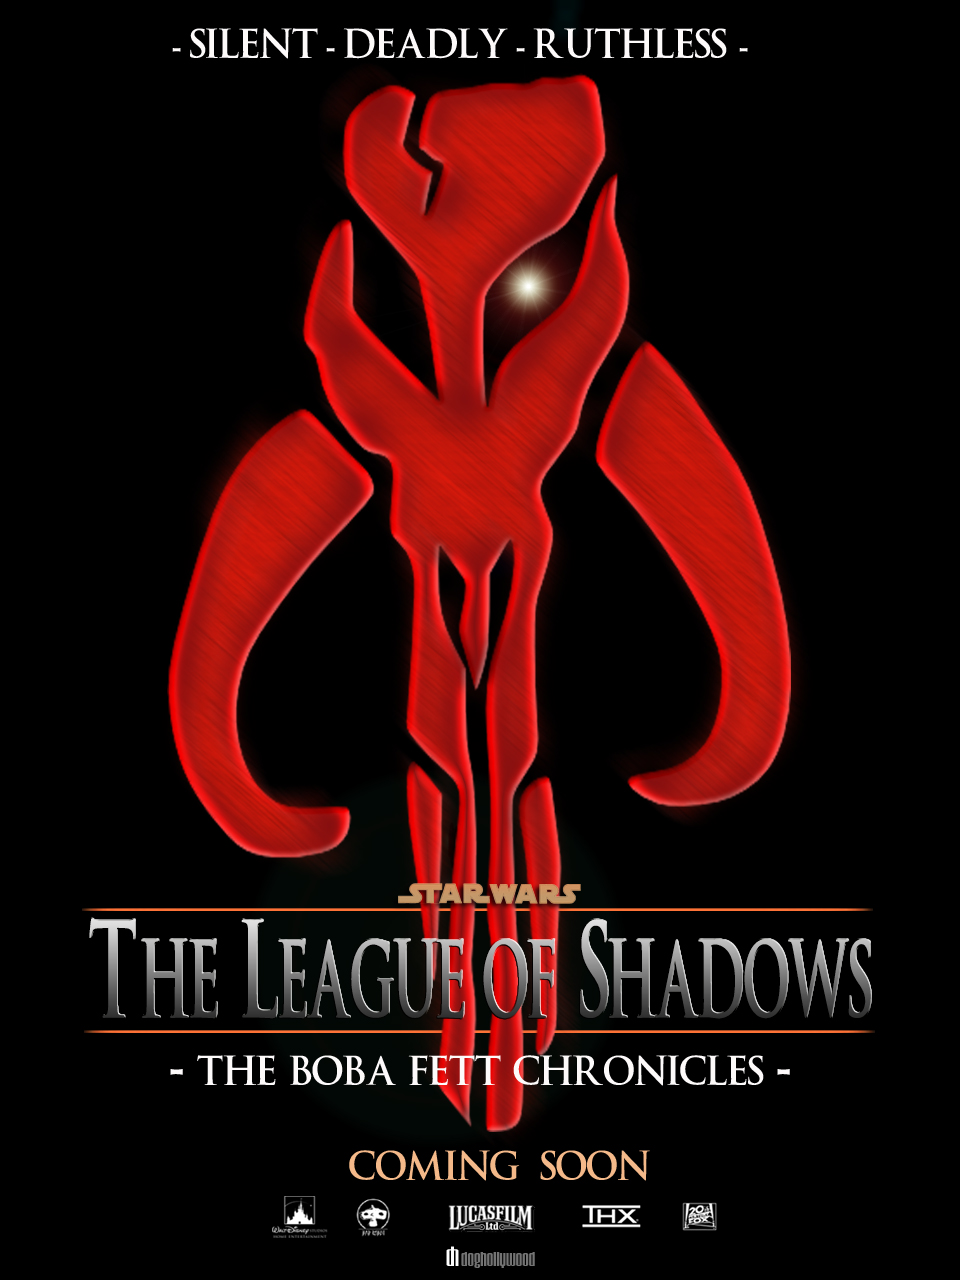 Star wars boba fett chronicles league of shadows by doghollywood star wars boba fett chronicles league of shadows by doghollywood buycottarizona Image collections